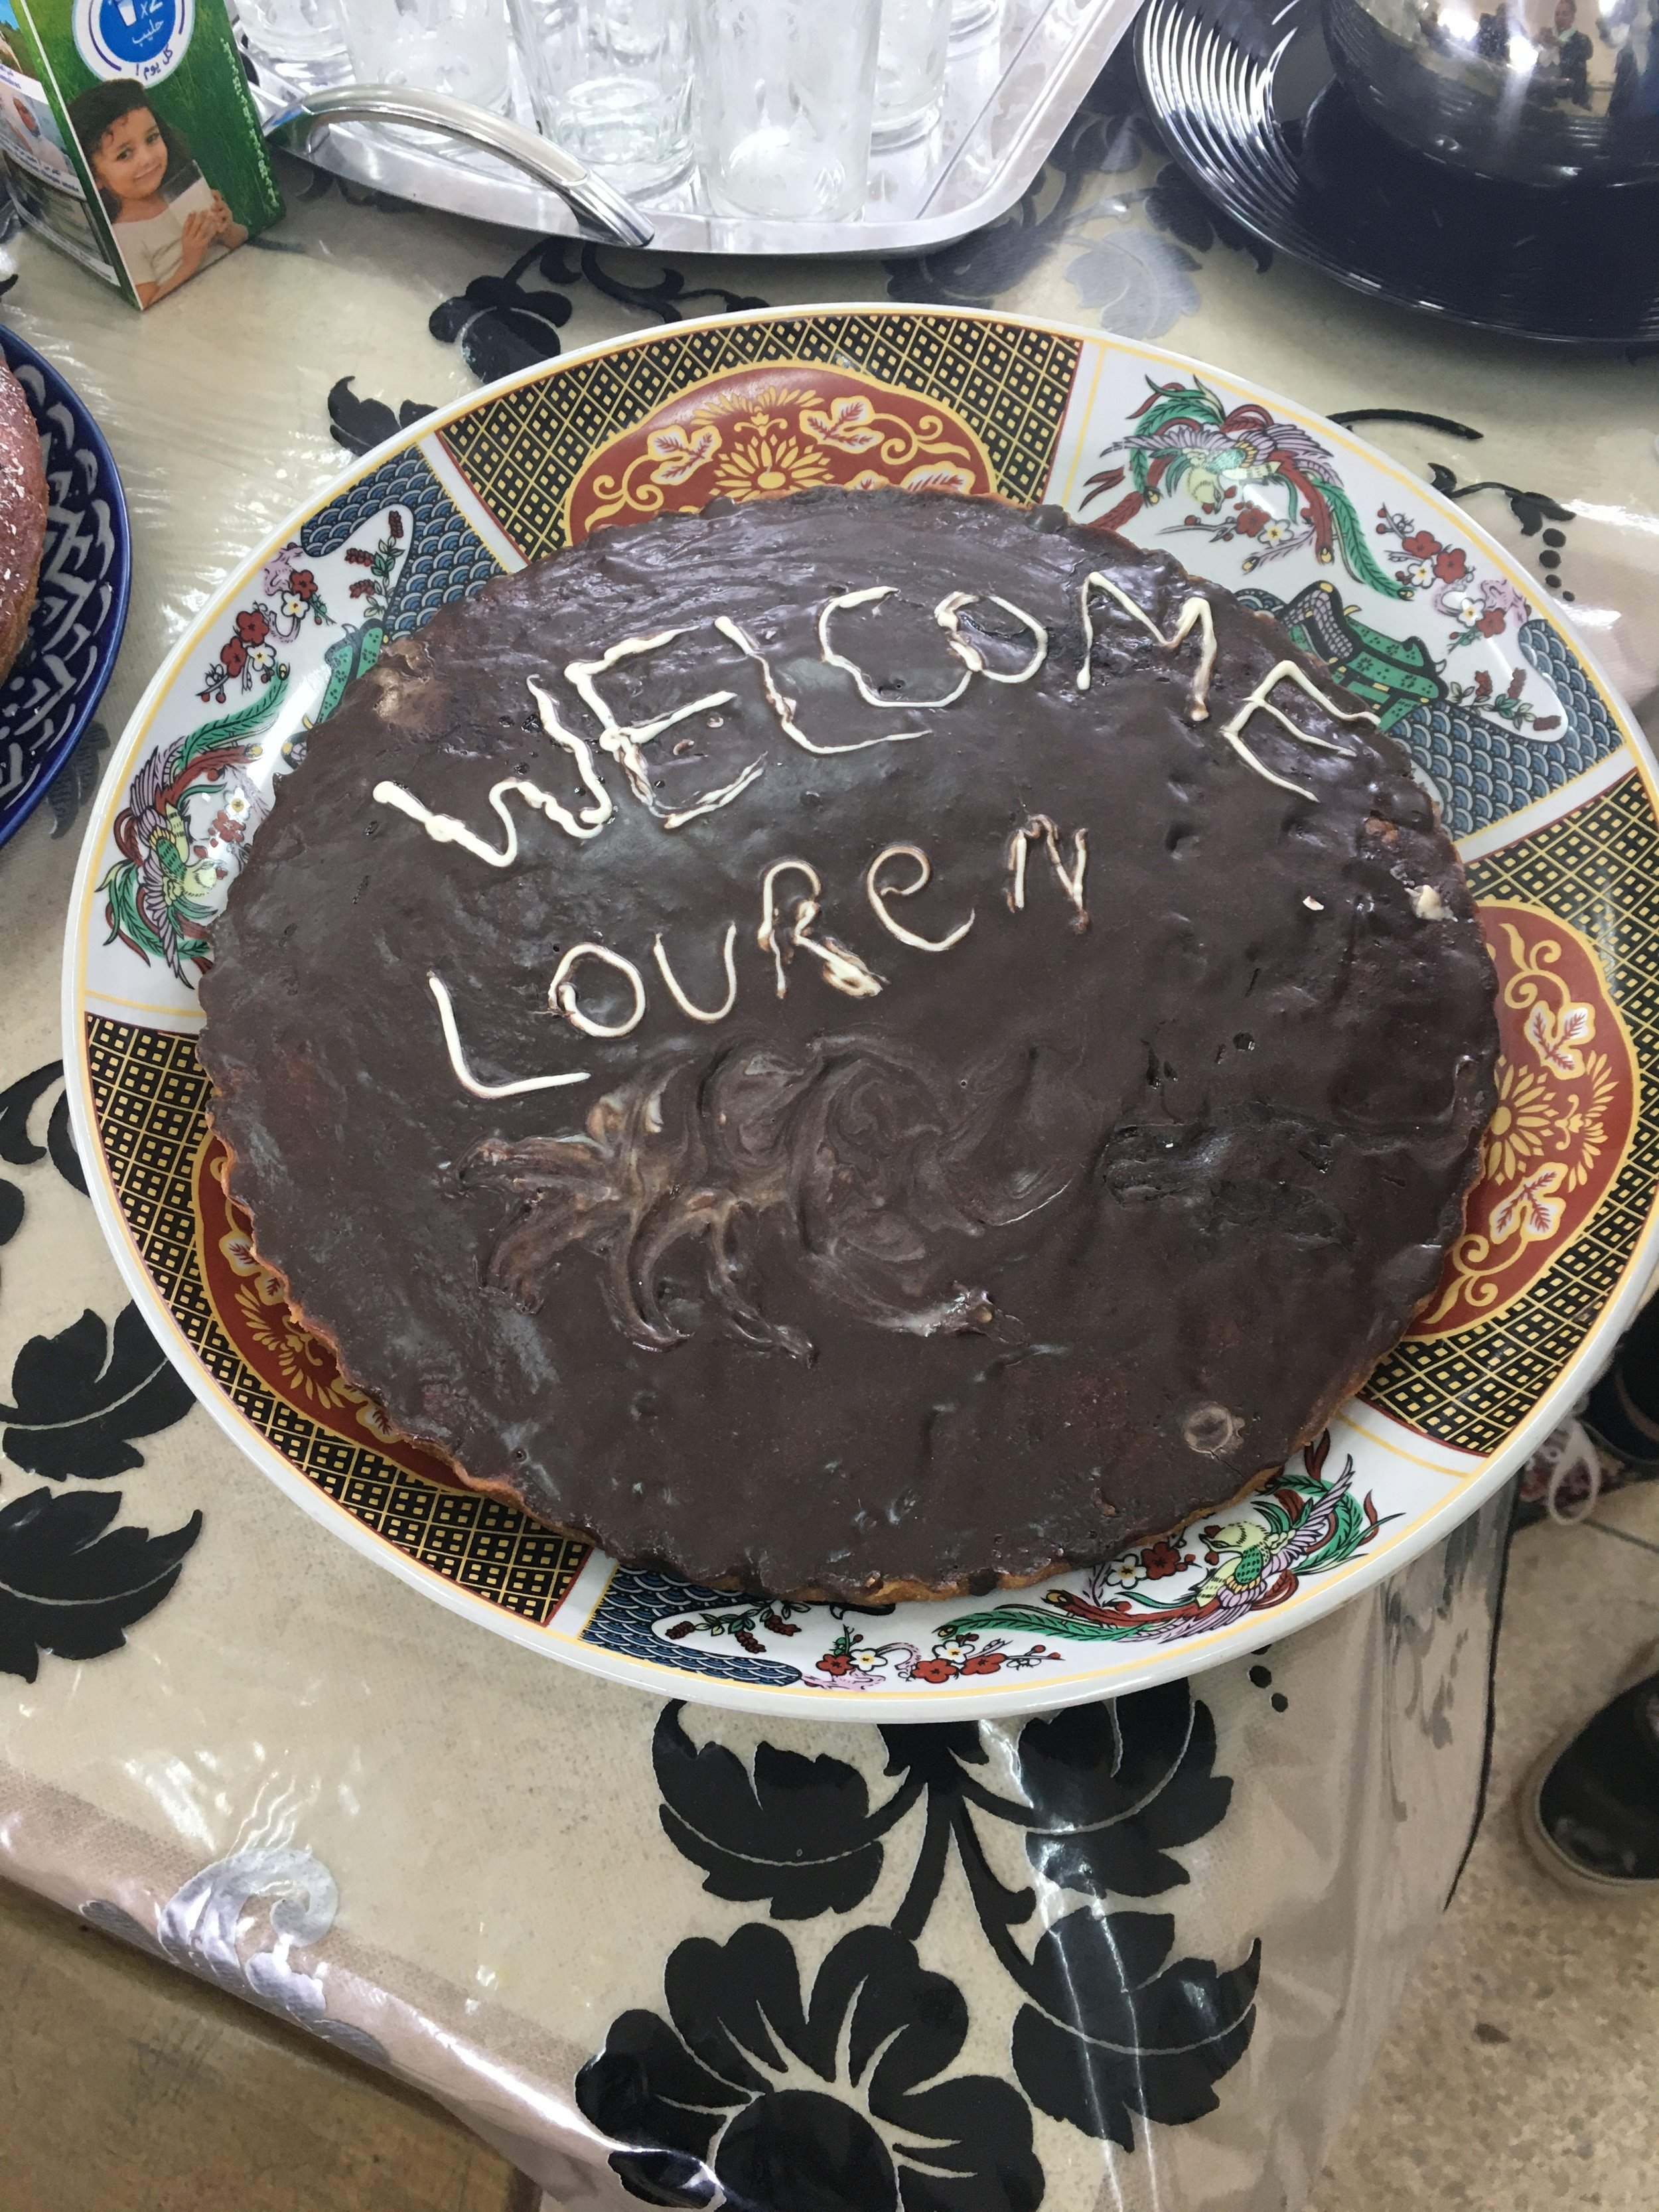 Students at a middle school had a small celebration for us. They baked a cake with my name on it! Thanks to our new friend Adil for putting this together.